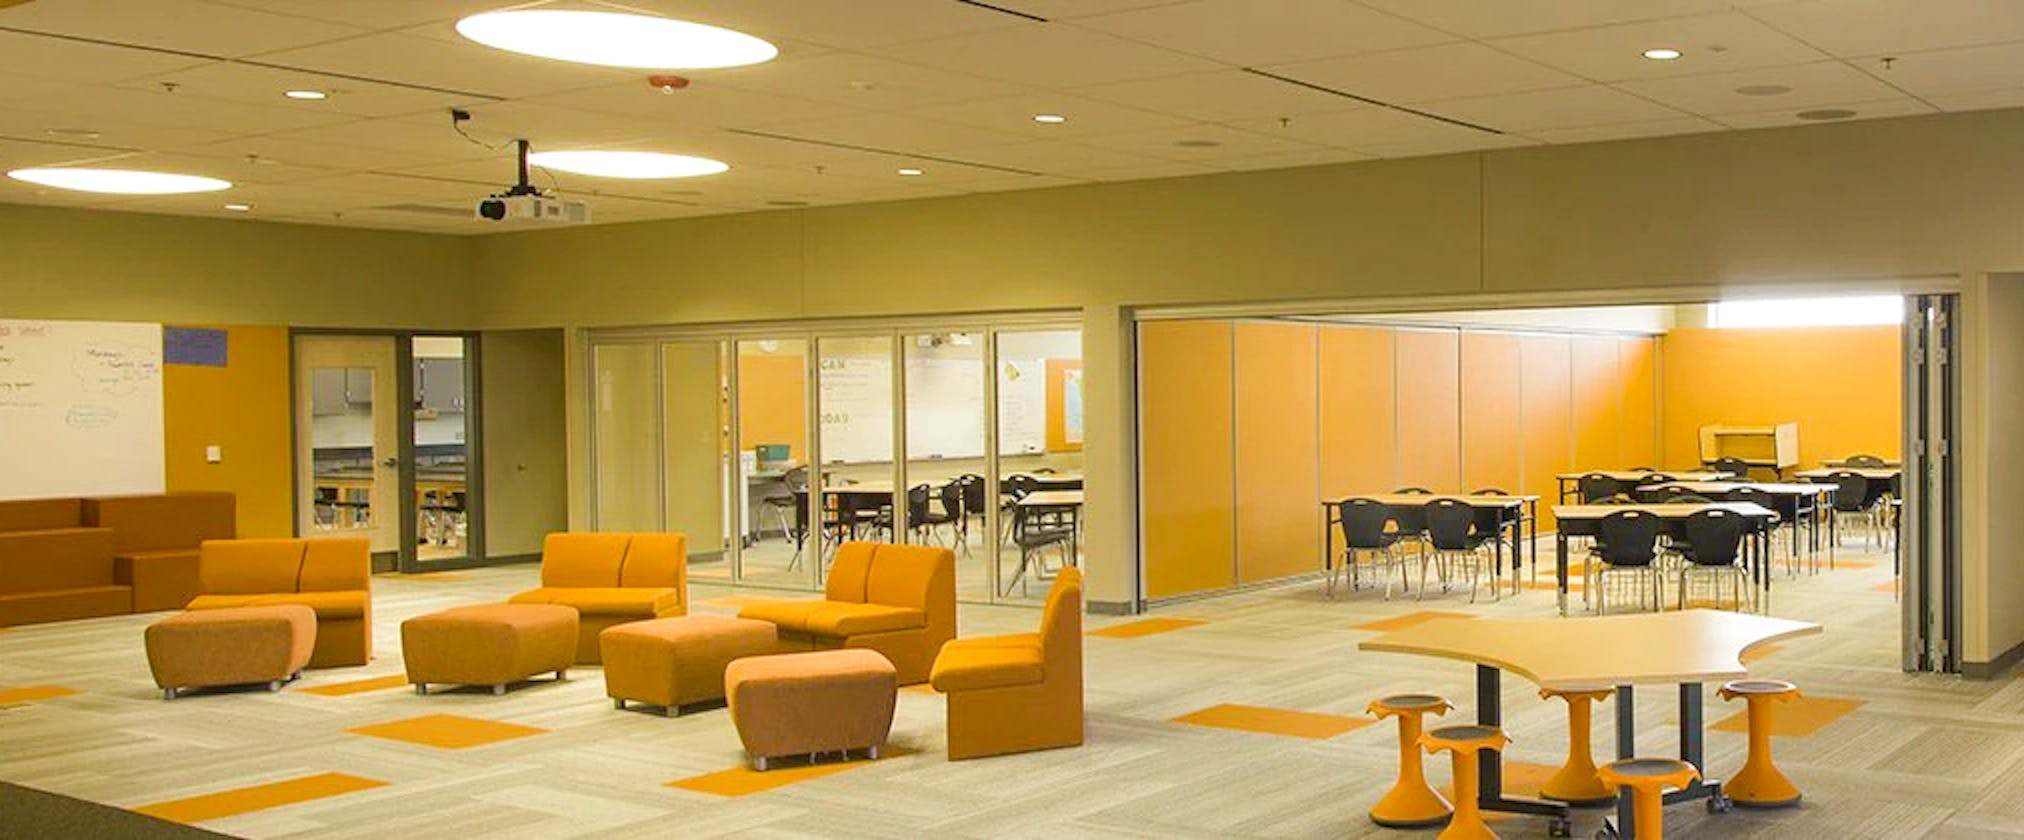 collaboration hub in elementary school with acoustic moveable glass walls in classrooms